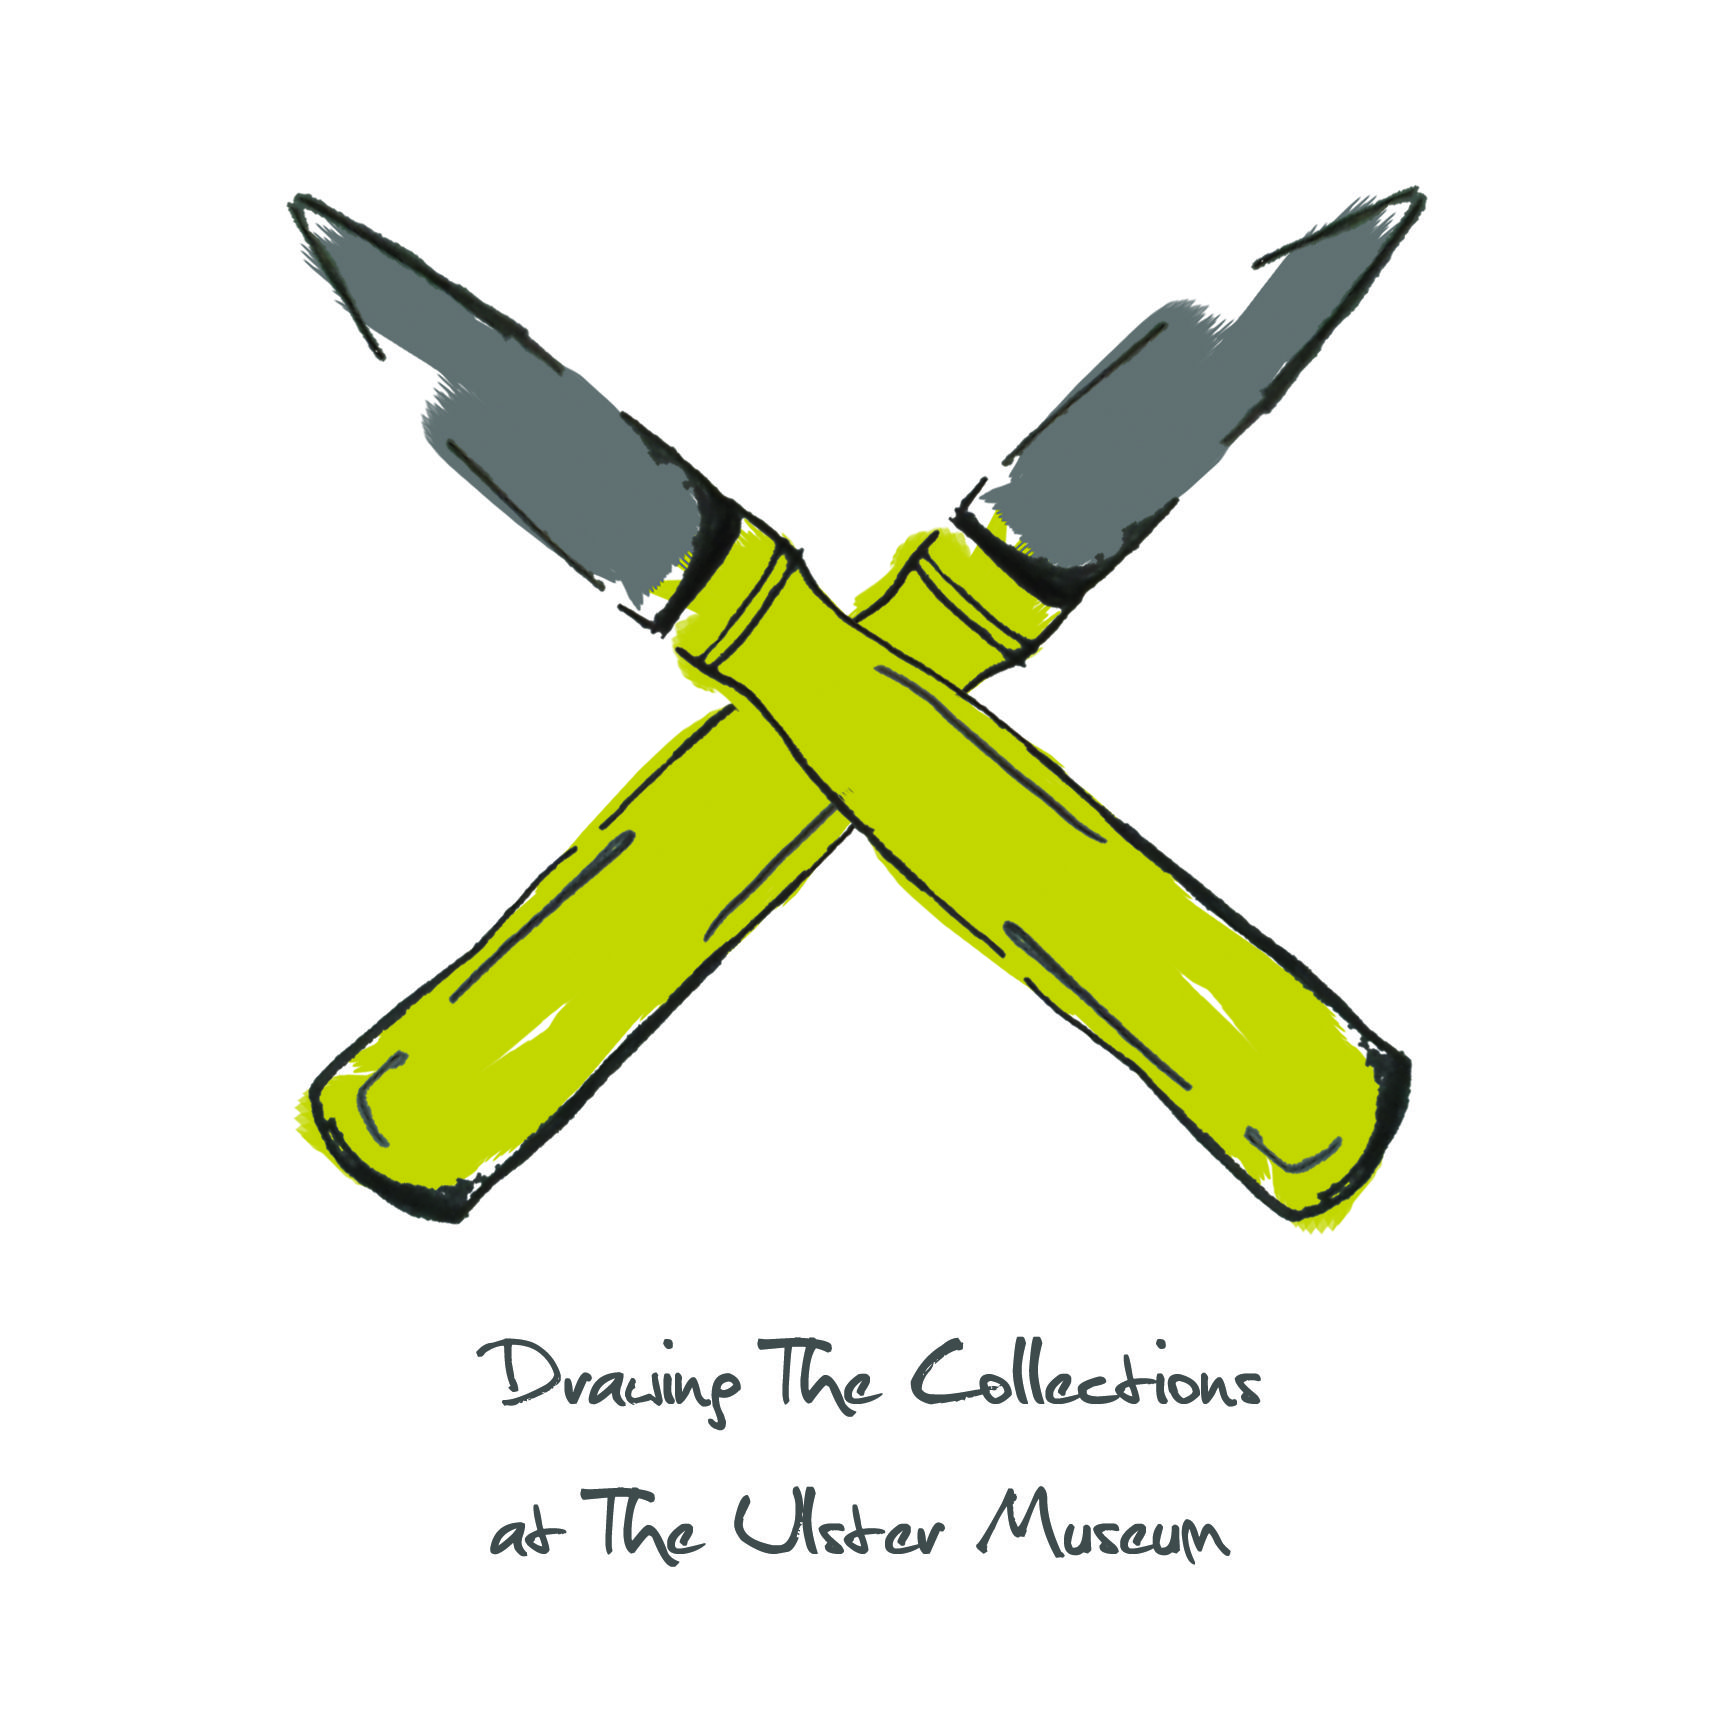 'Drawing The Collections At The Ulster Museum' Front Cover ...